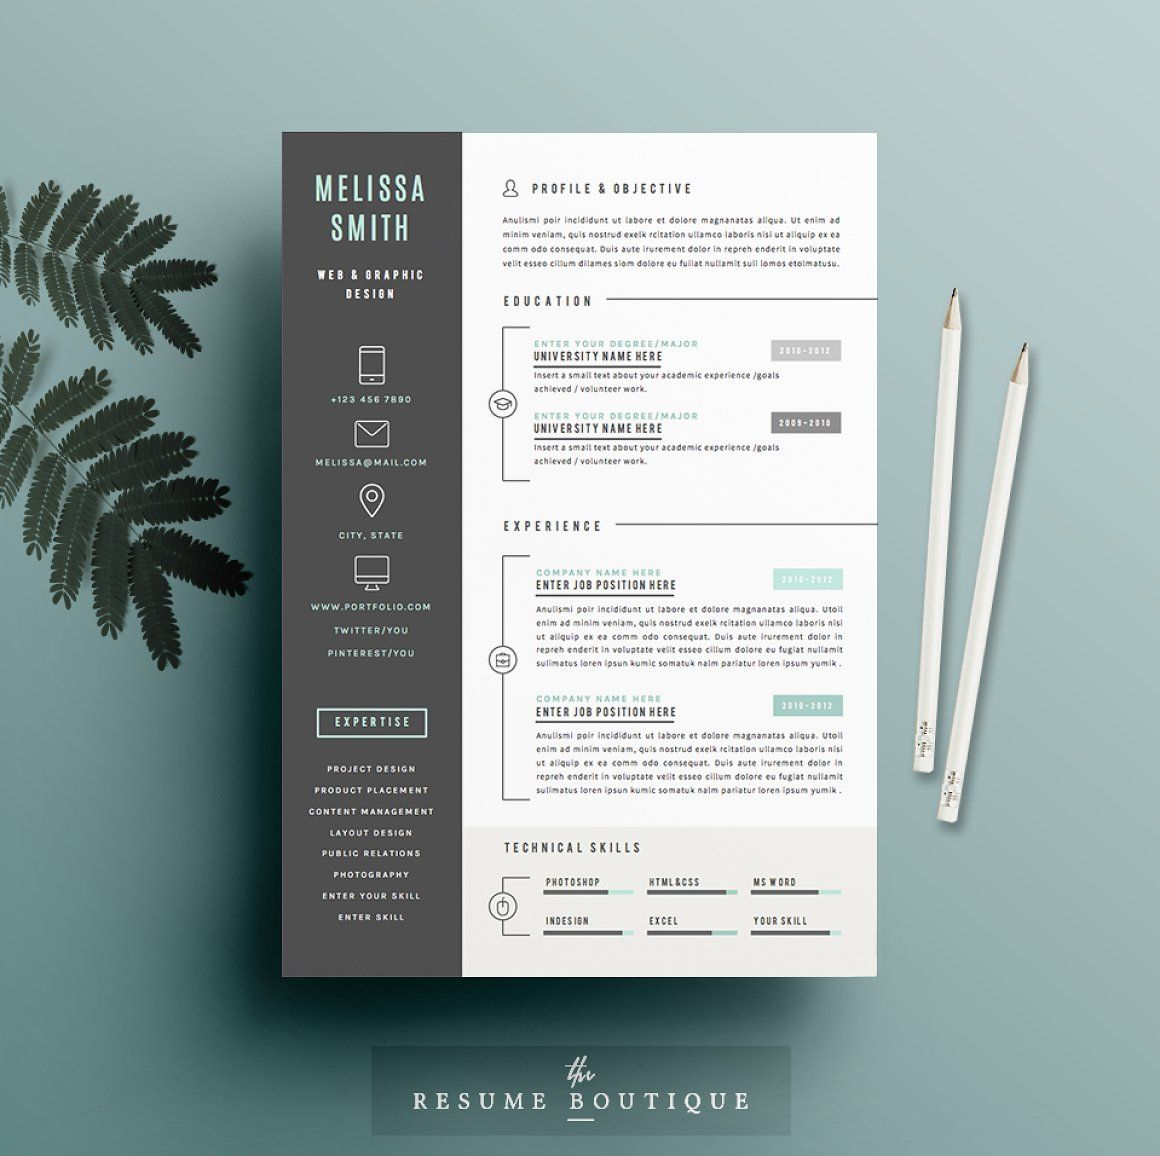 Resume Templates Microsoft Word 2010 Beauteous 50 Creative Resume Templates You Won't Believe Are Microsoft Word .